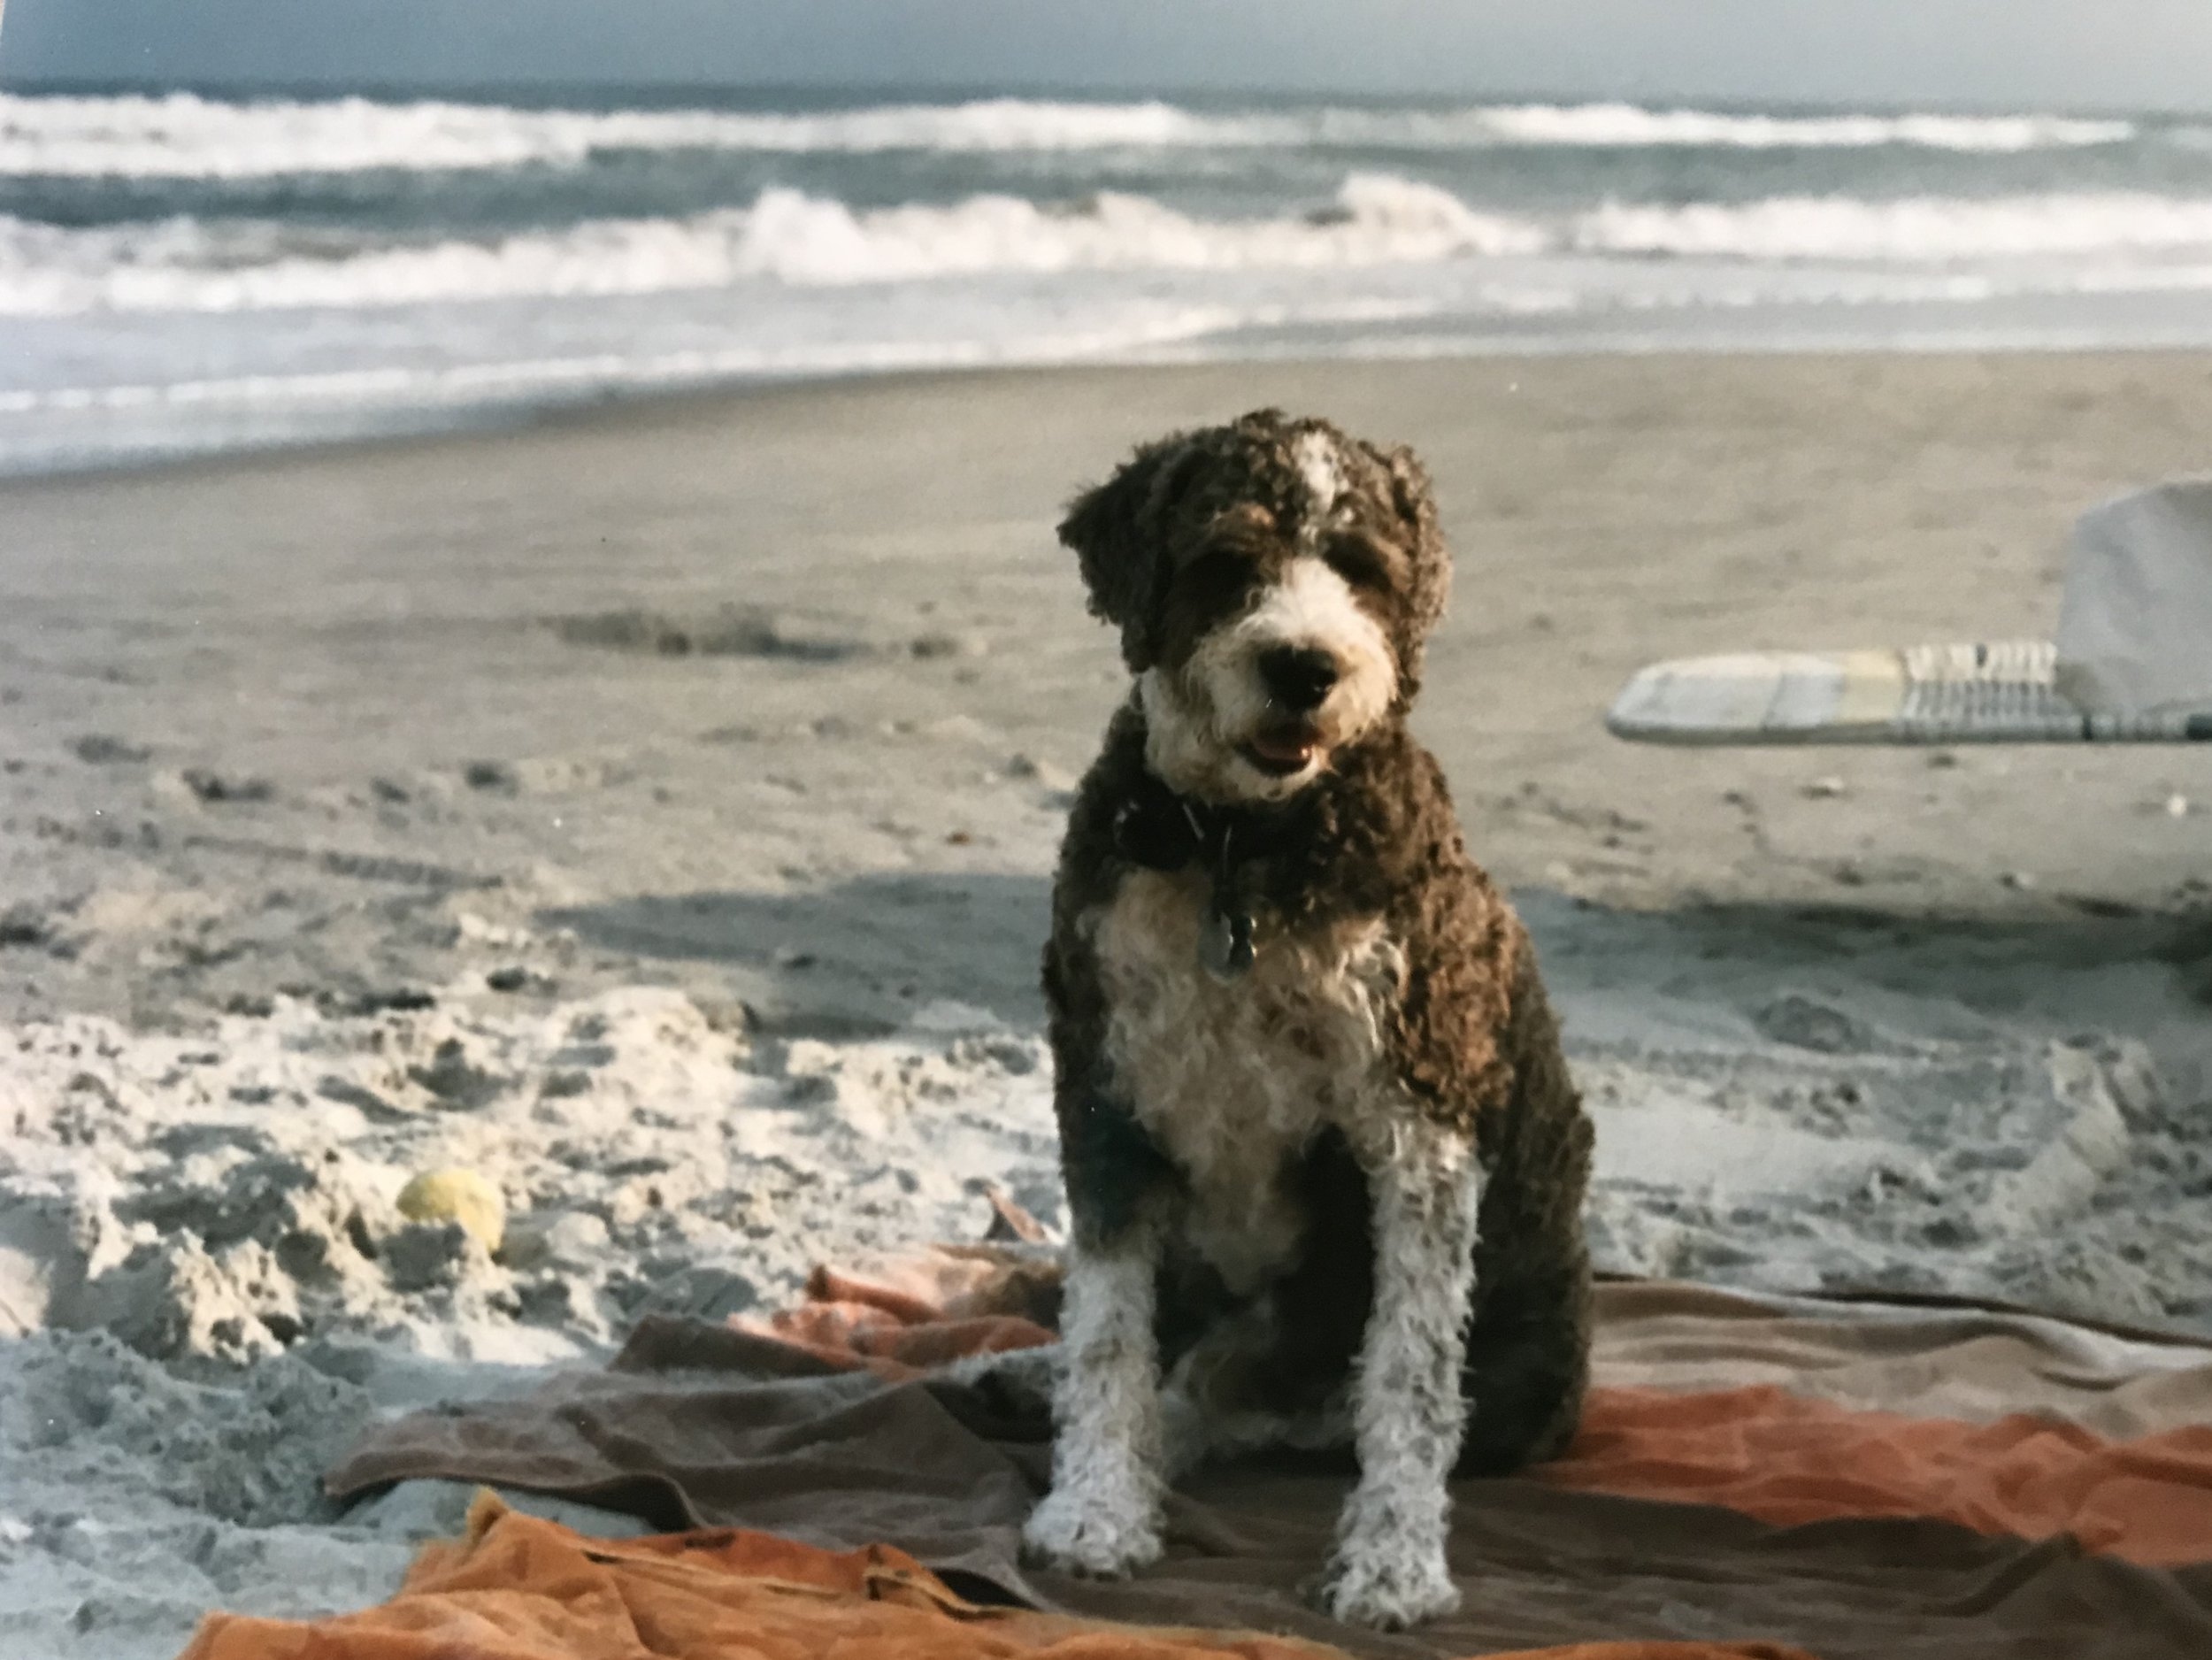 Brown Bear at a Topsail, Island, NC, beach, circa 1980